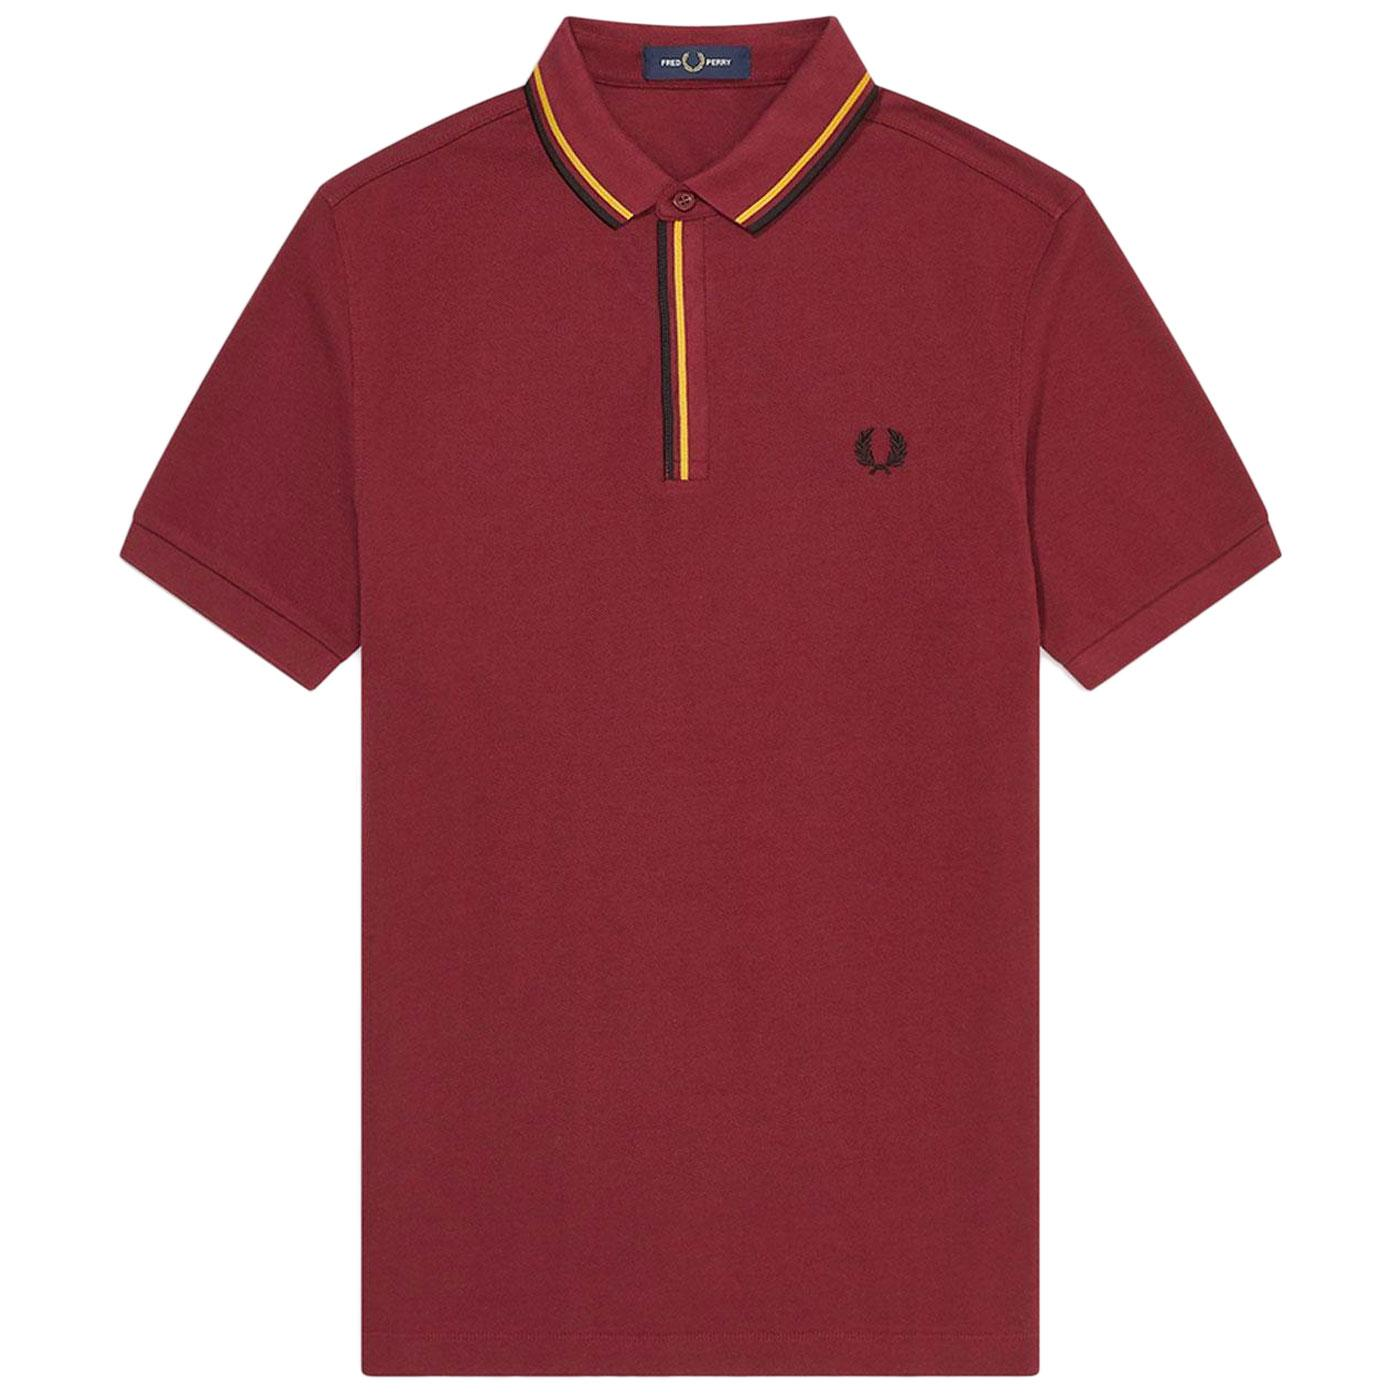 FRED PERRY M8559 Mod Tipped Placket Polo Top PORT